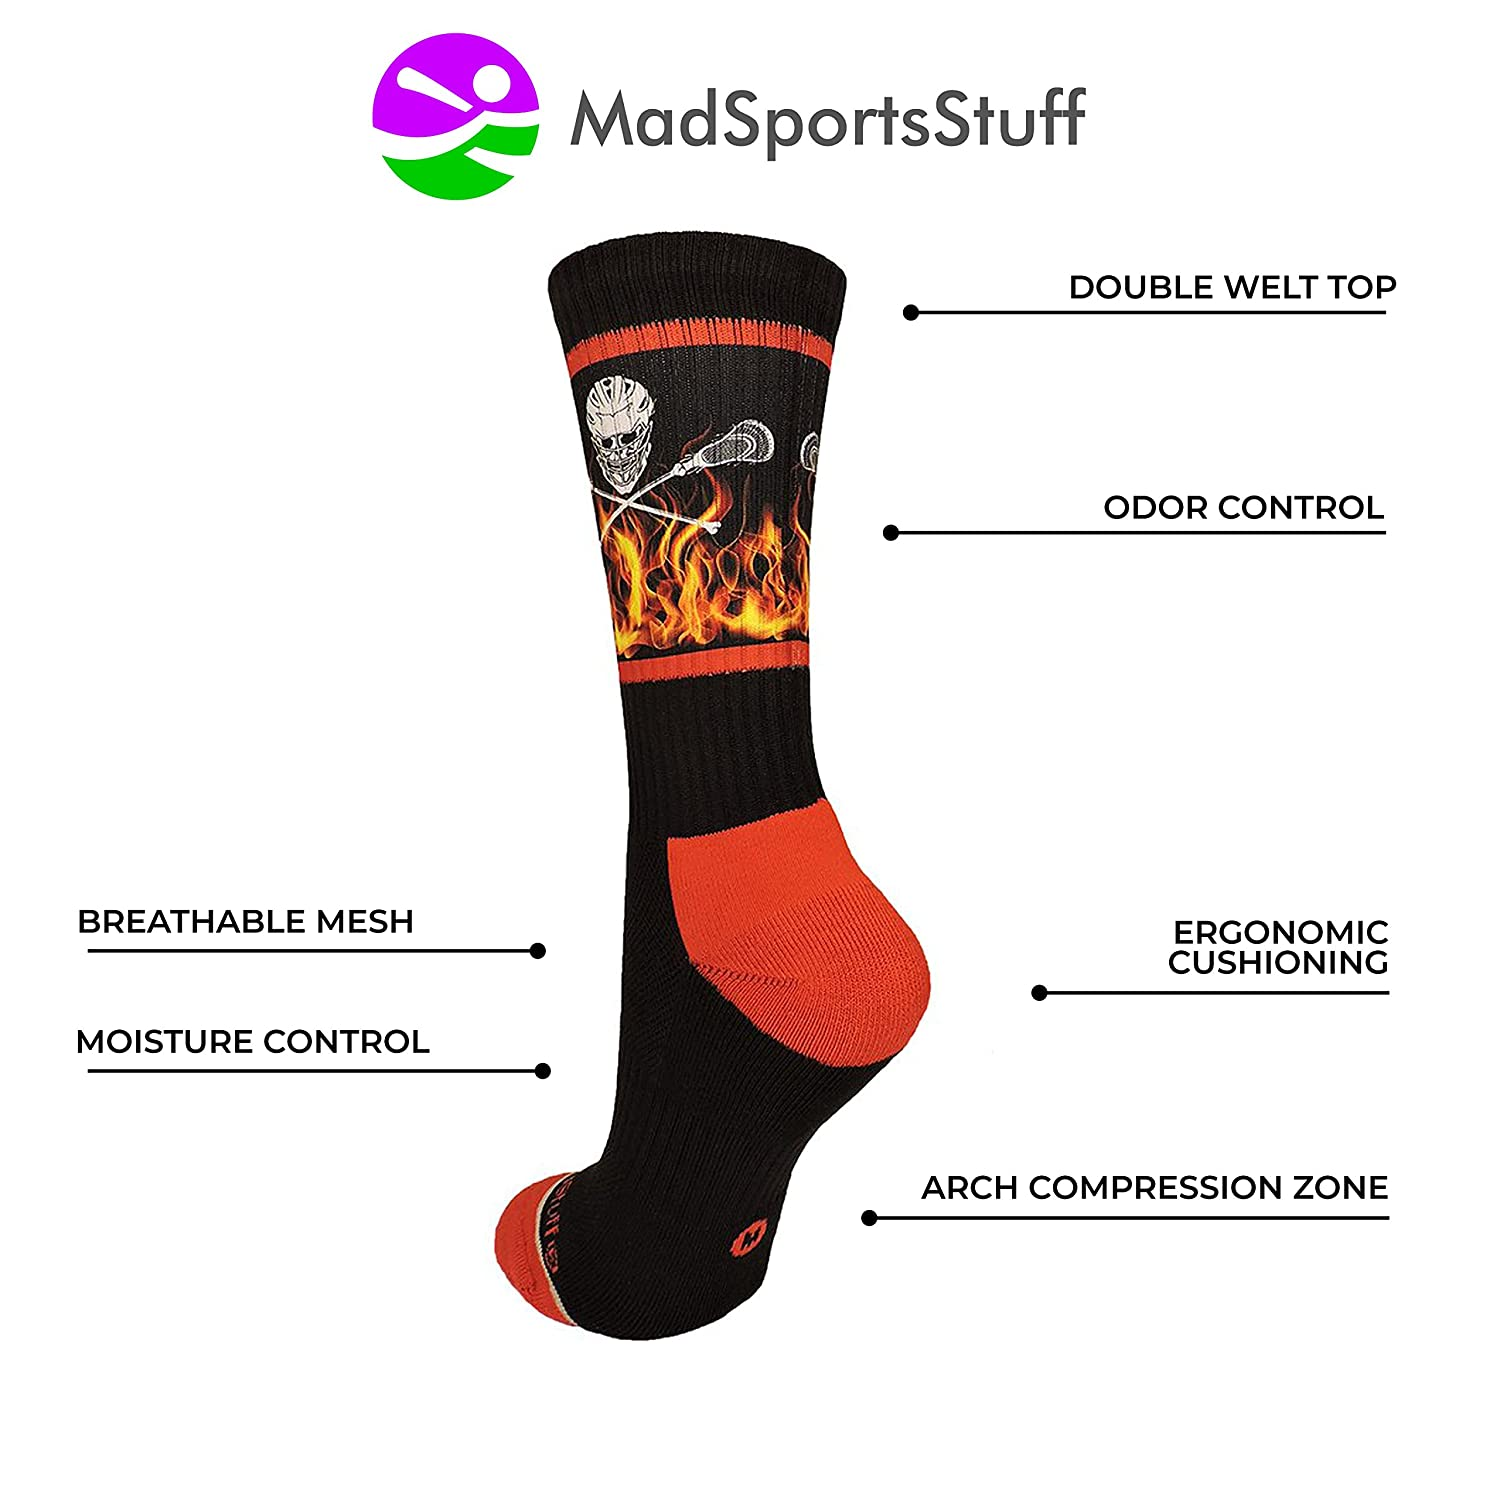 MadSportsStuff Lacrosse Socks with Lacrosse Sticks and Flaming Skull Athletic Crew Socks